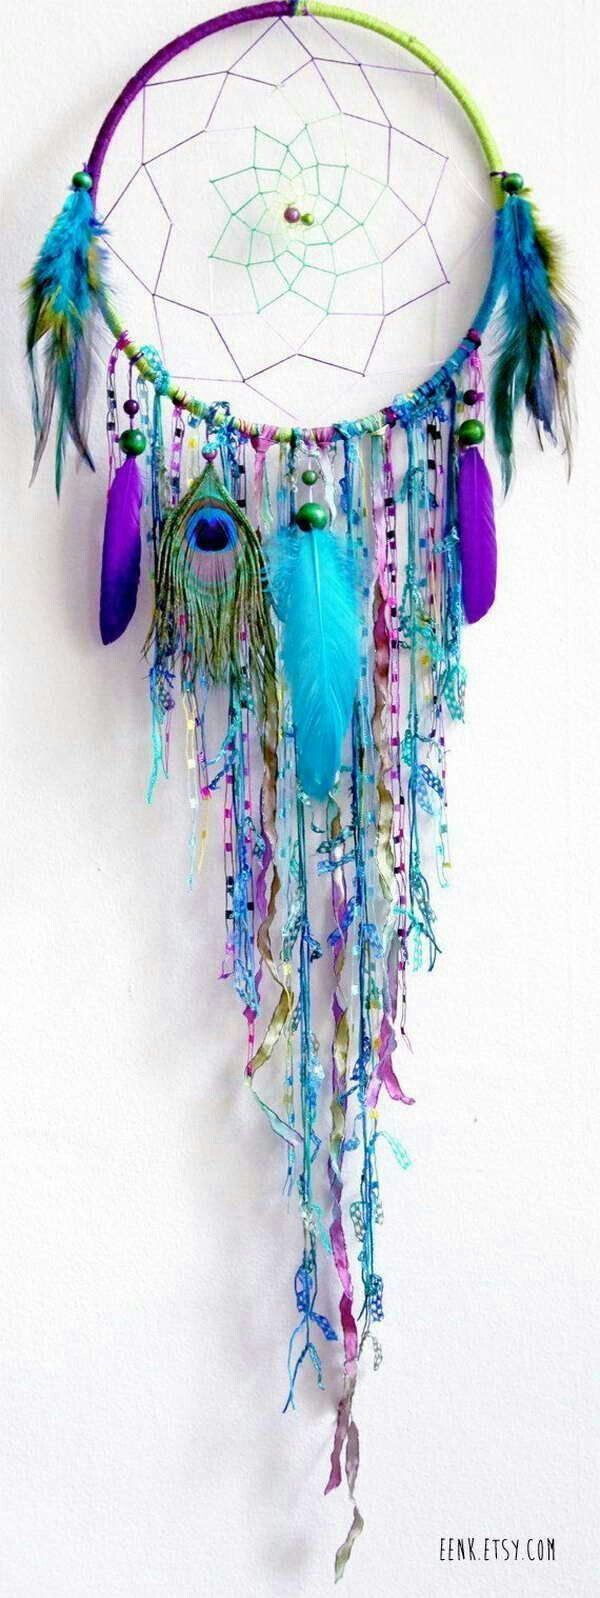 Beautiful bedroom dream catcher hippie hipster indie room sy - Find This Pin And More On Dream Catchers By Melissafranco75